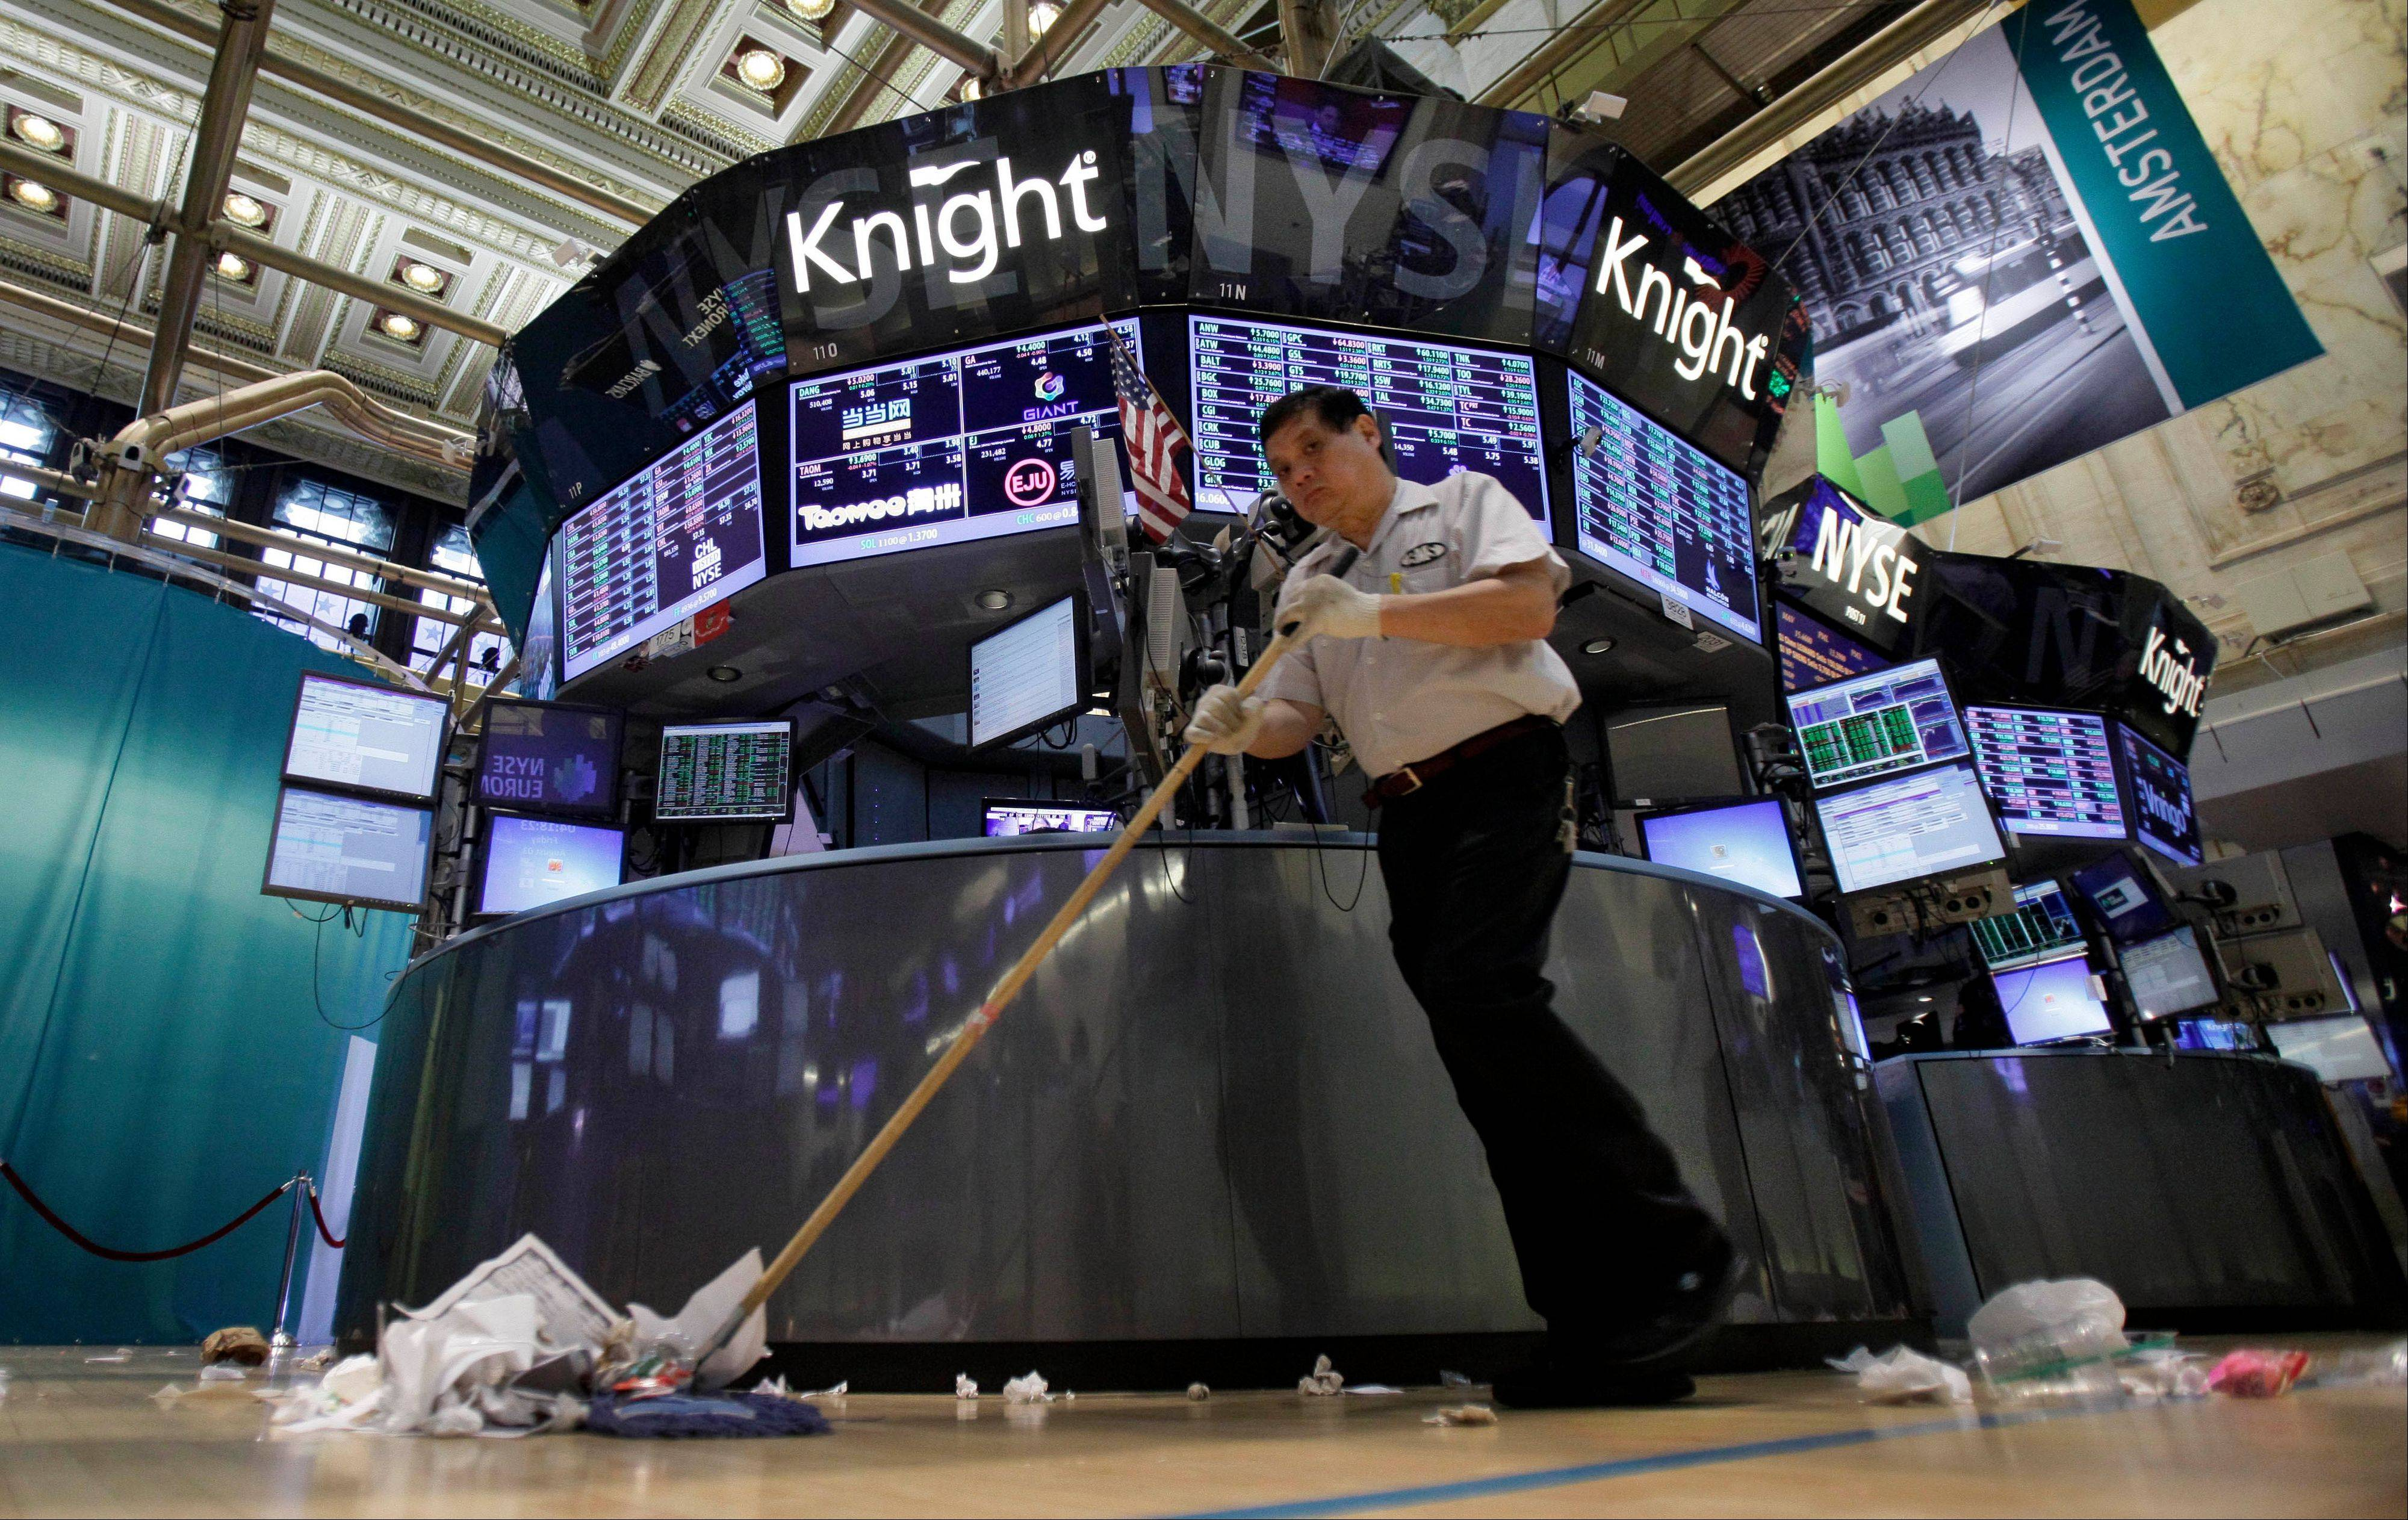 Billy Ying sweeps the floor around the Knight Capital trading post on the floor of the New York Stock Exchange after the close of trading Friday, Aug. 3, 2012. Knight Capital's stock soared after the battered trading firm received a financial lifeline and clients said they expect to resume routing trades through the system.